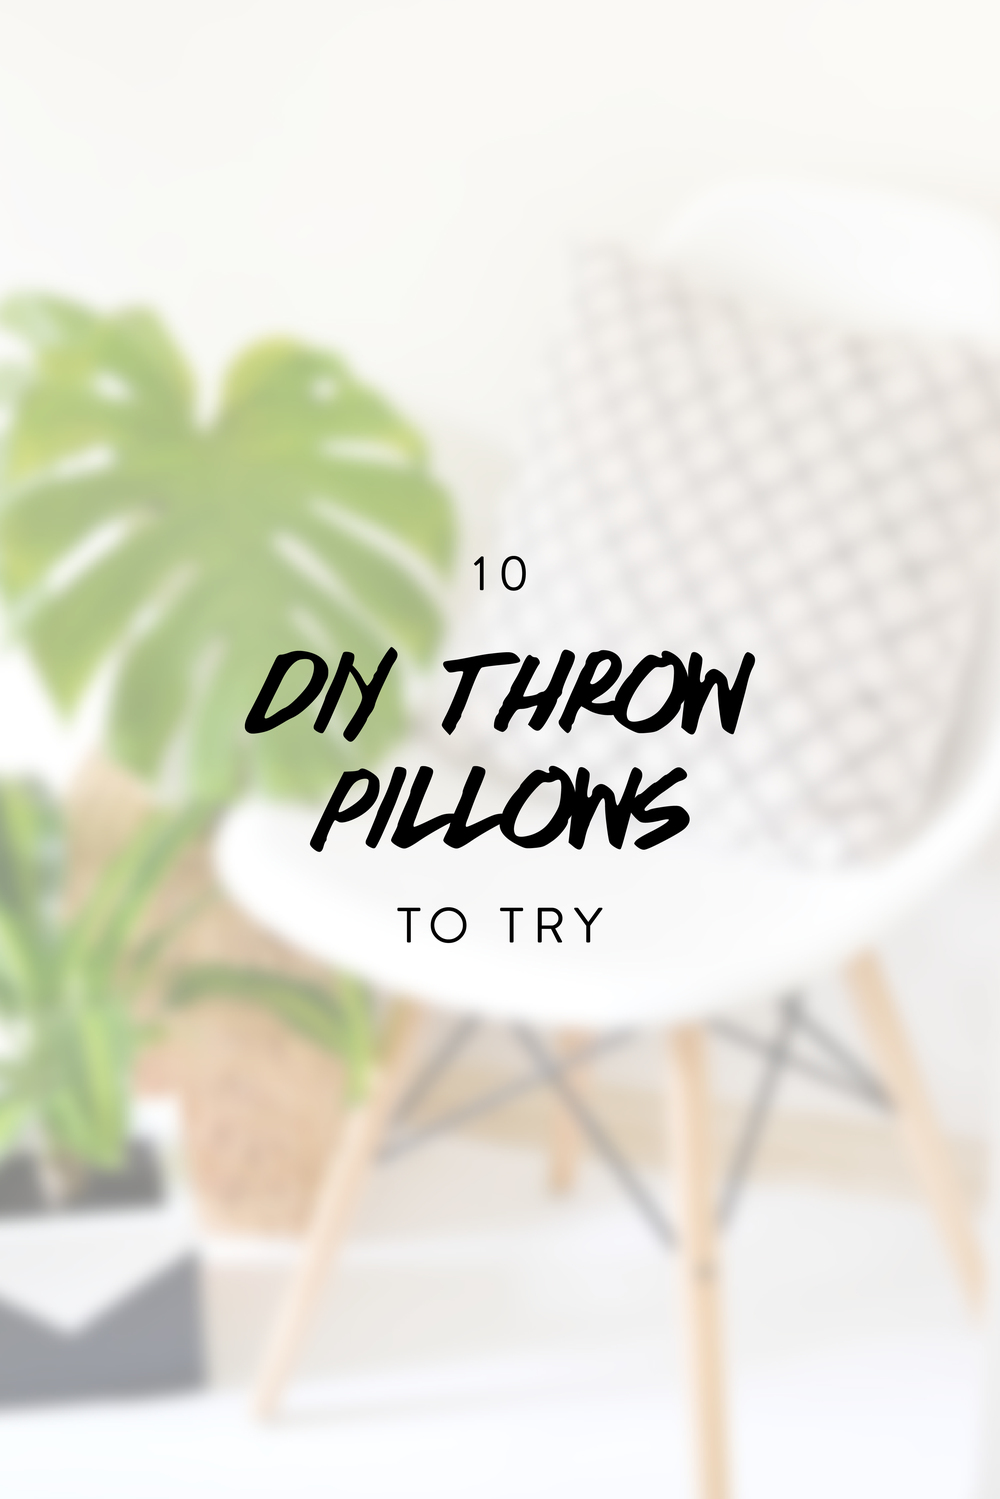 10 DIY Throw Pillows To Try